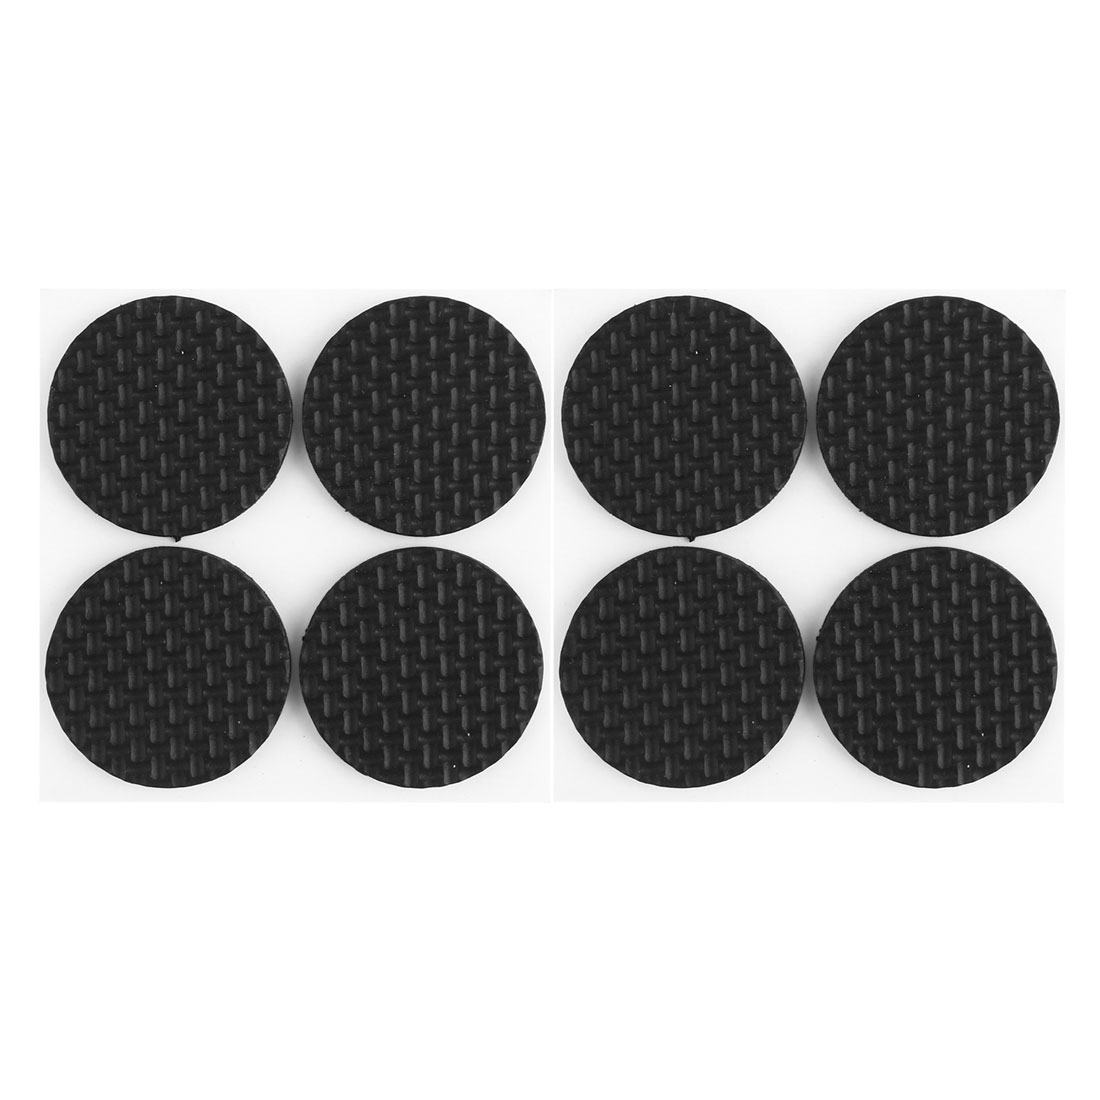 Household Furniture Table Chair Rubber Round Shaped Protection Cushion Pads Black 8pcs